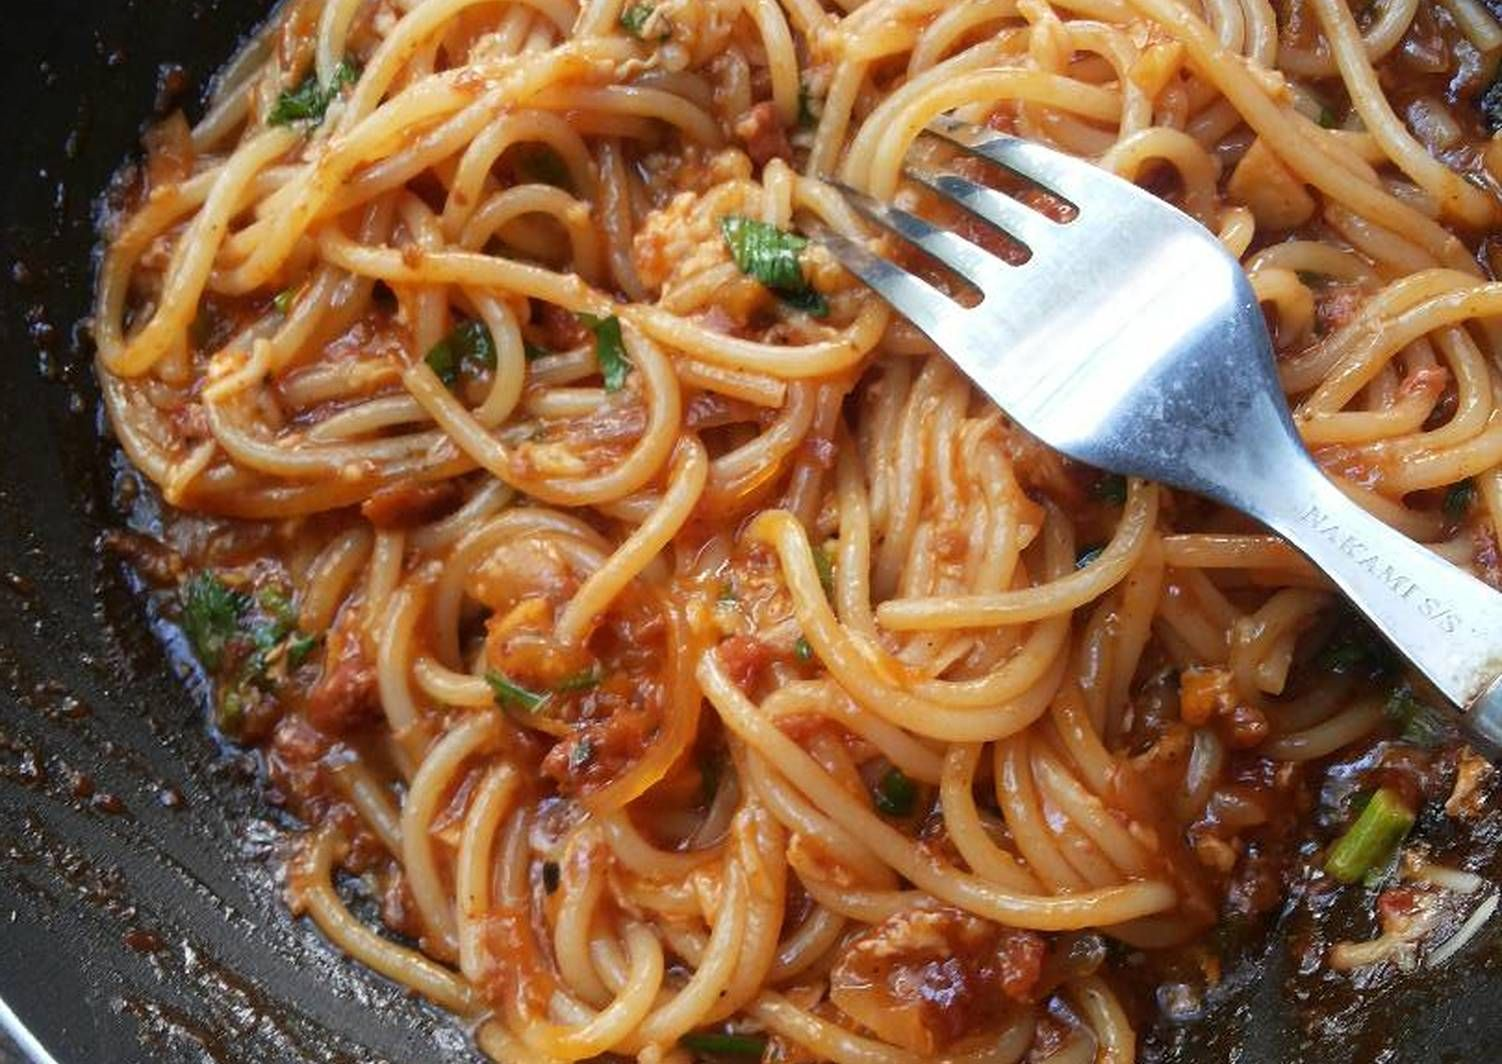 Resep Spaghetti Bolognese Oleh You Can Do It Kitchen Resep Resep Resep Masakan Makanan